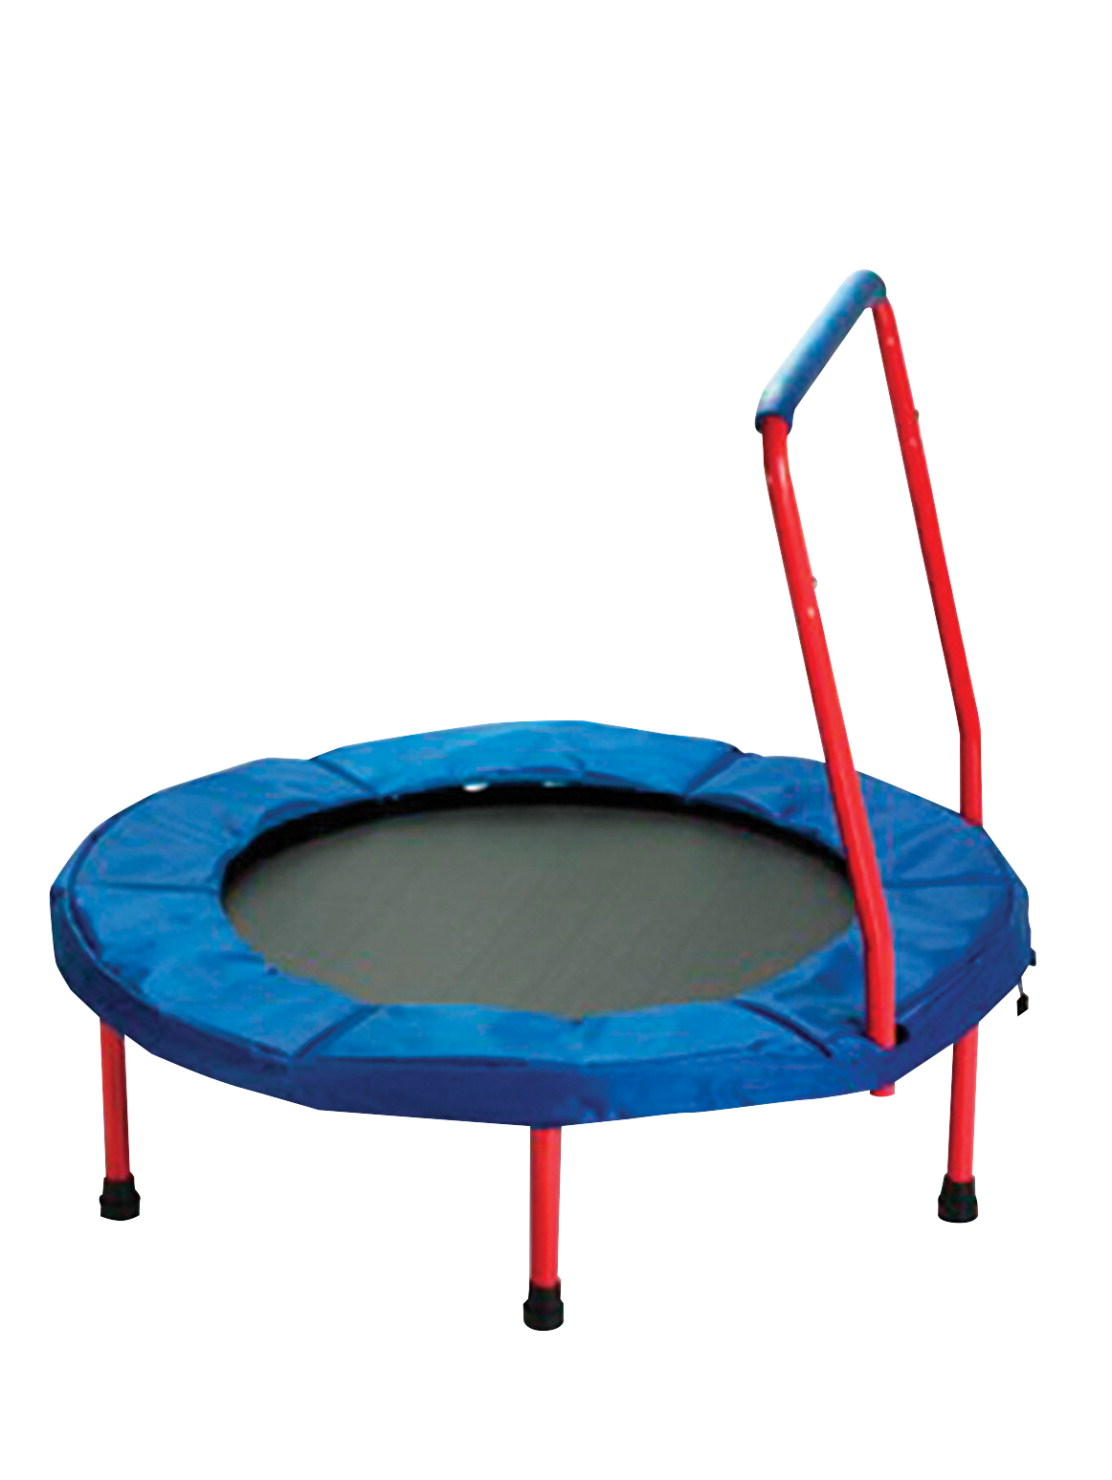 original toy company fold go trampoline ages 3 and up 1372484 athletics balance core exercise equipment fitness accessories 3 10 Best Mini Trampolines for Kids & Adults 2021 - Trampoline Reviews